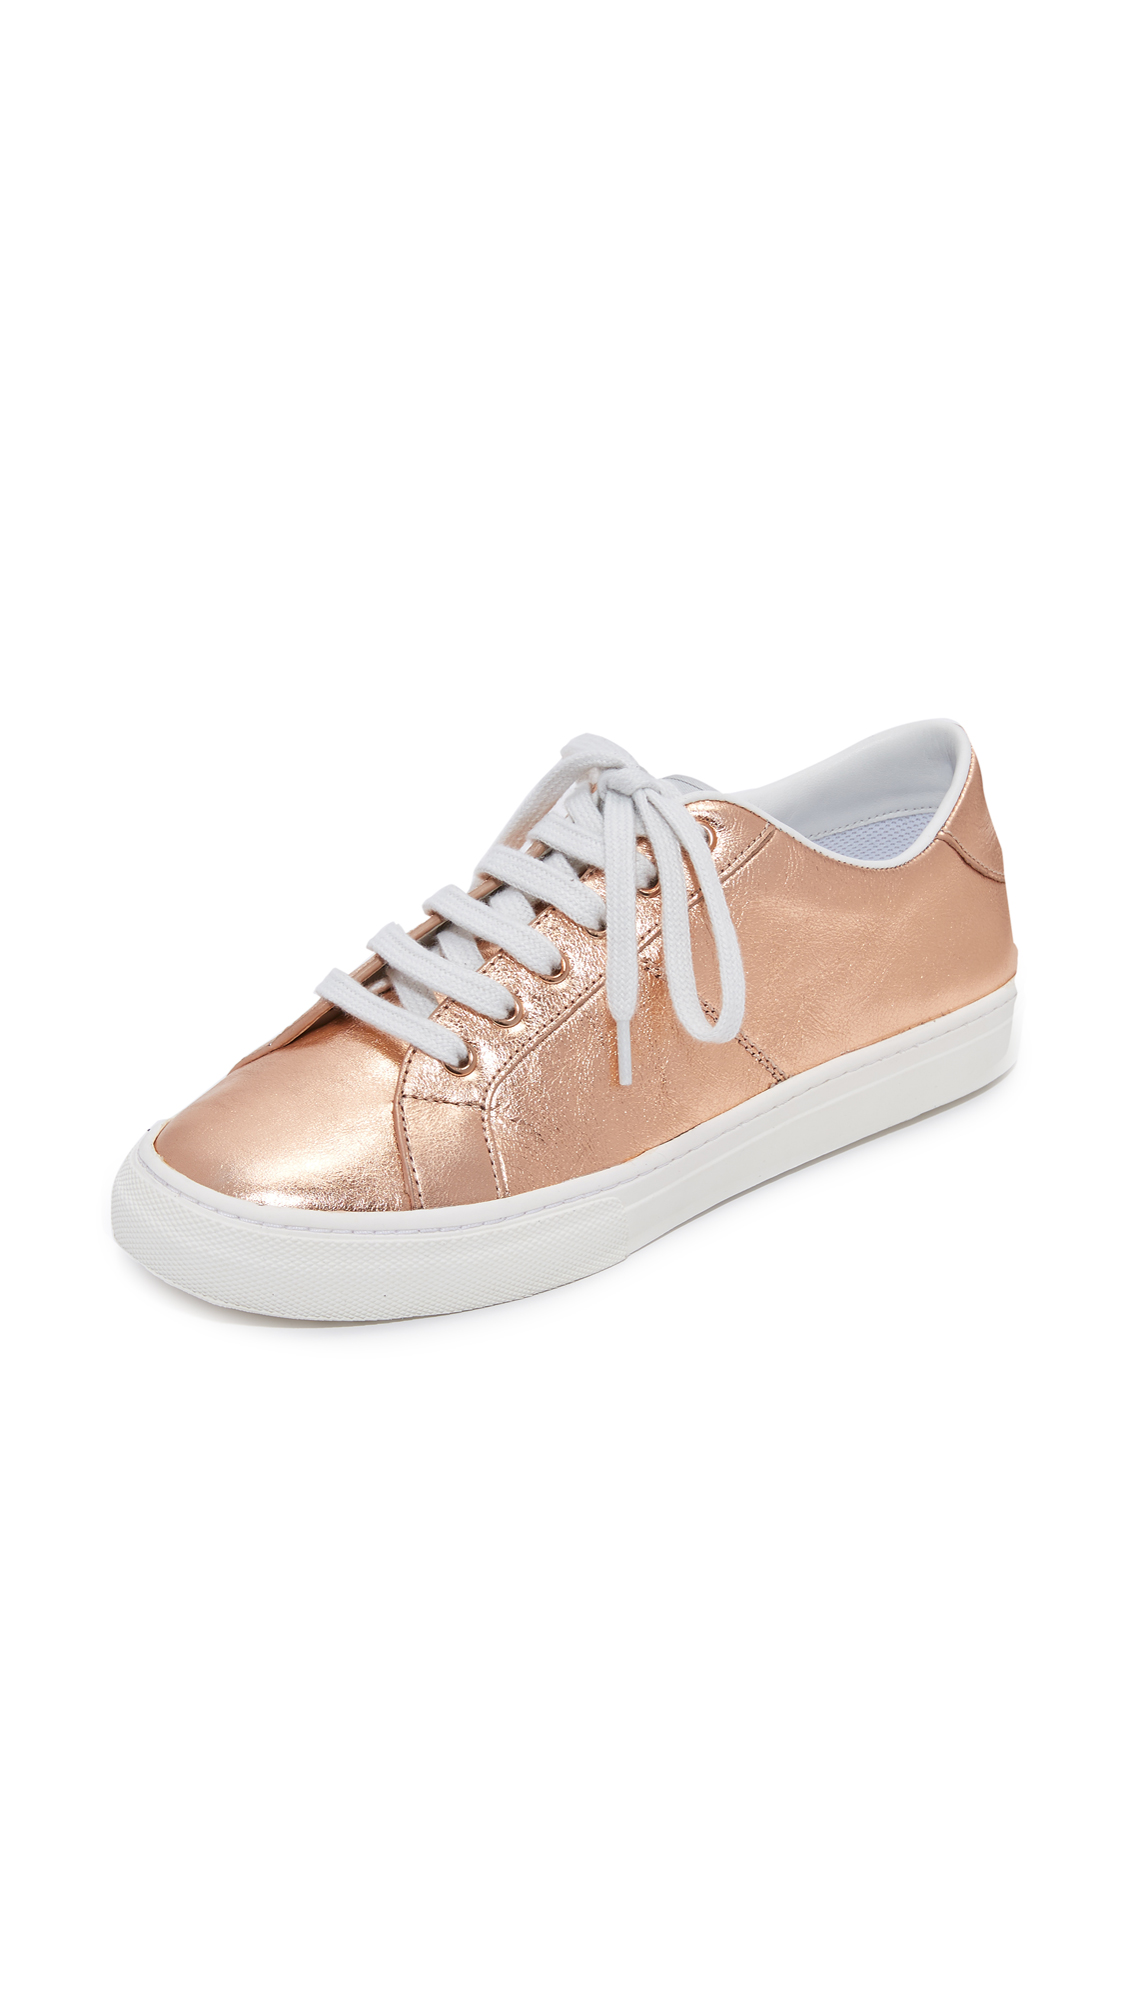 marc jacobs female 255807 marc jacobs empire low top sneakers rose gold